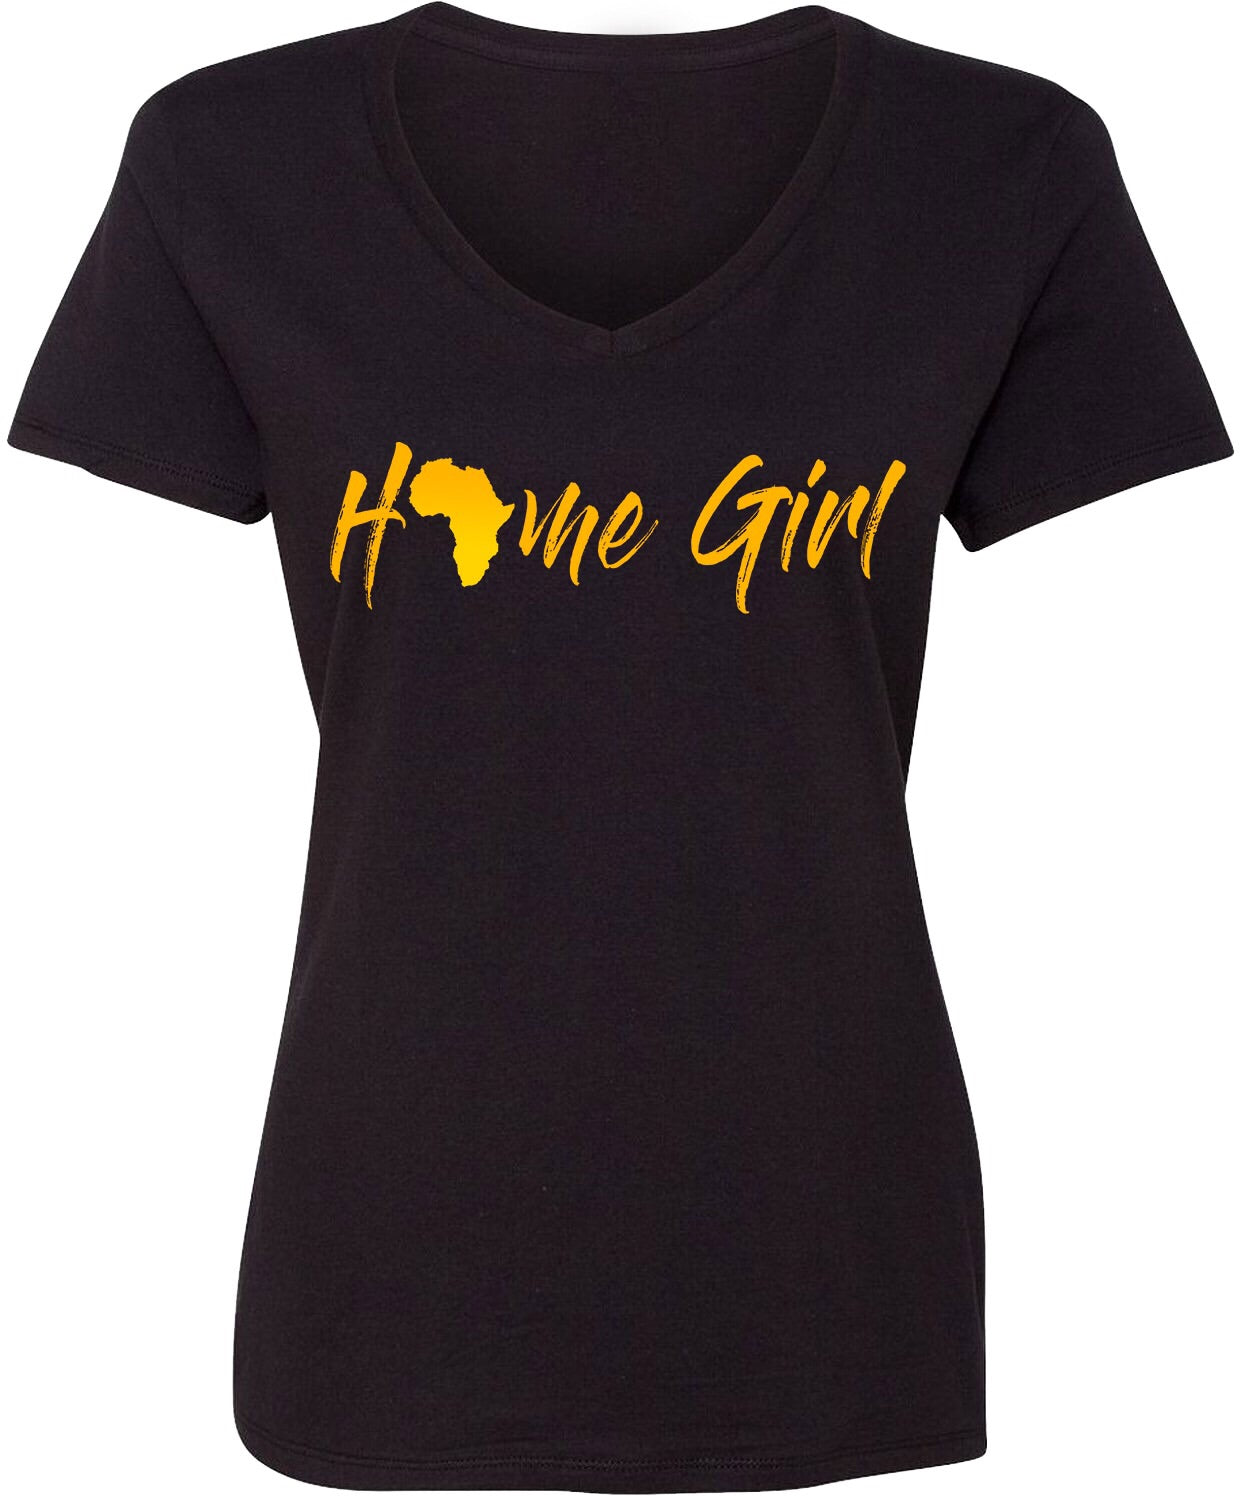 Home Girl T-Shirt